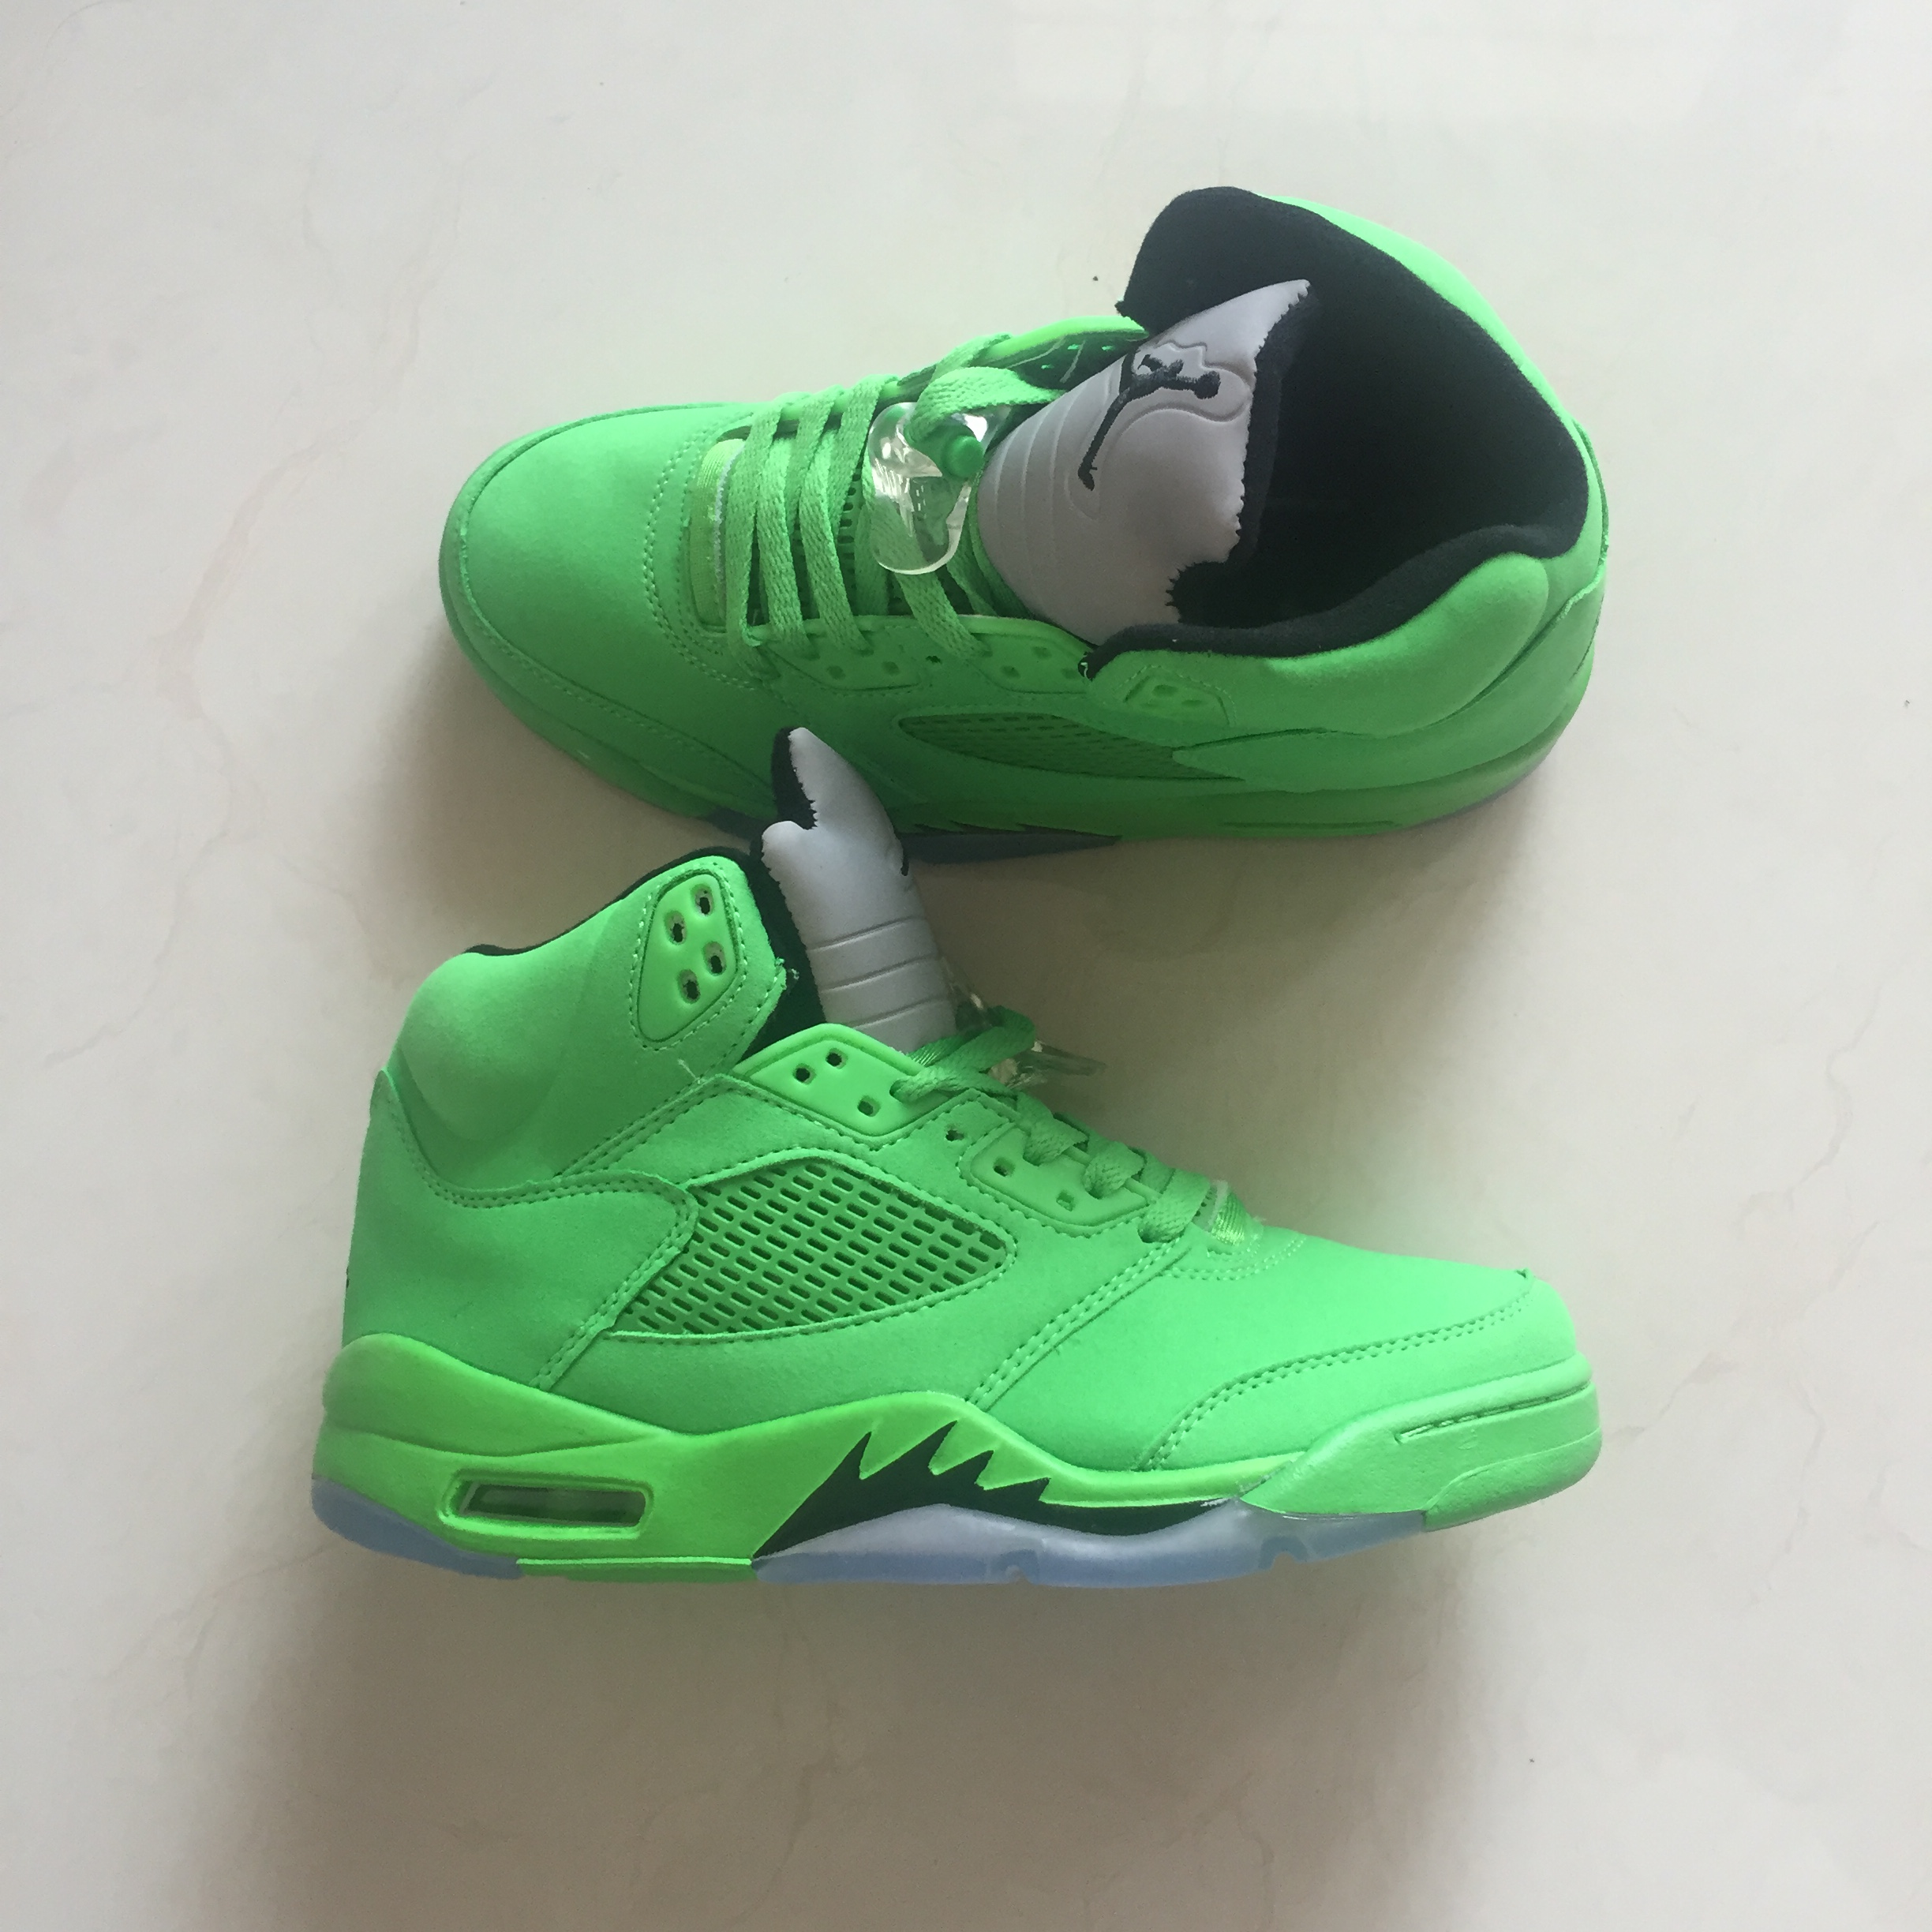 New Air Jordan 5 Retro All Green Shoes